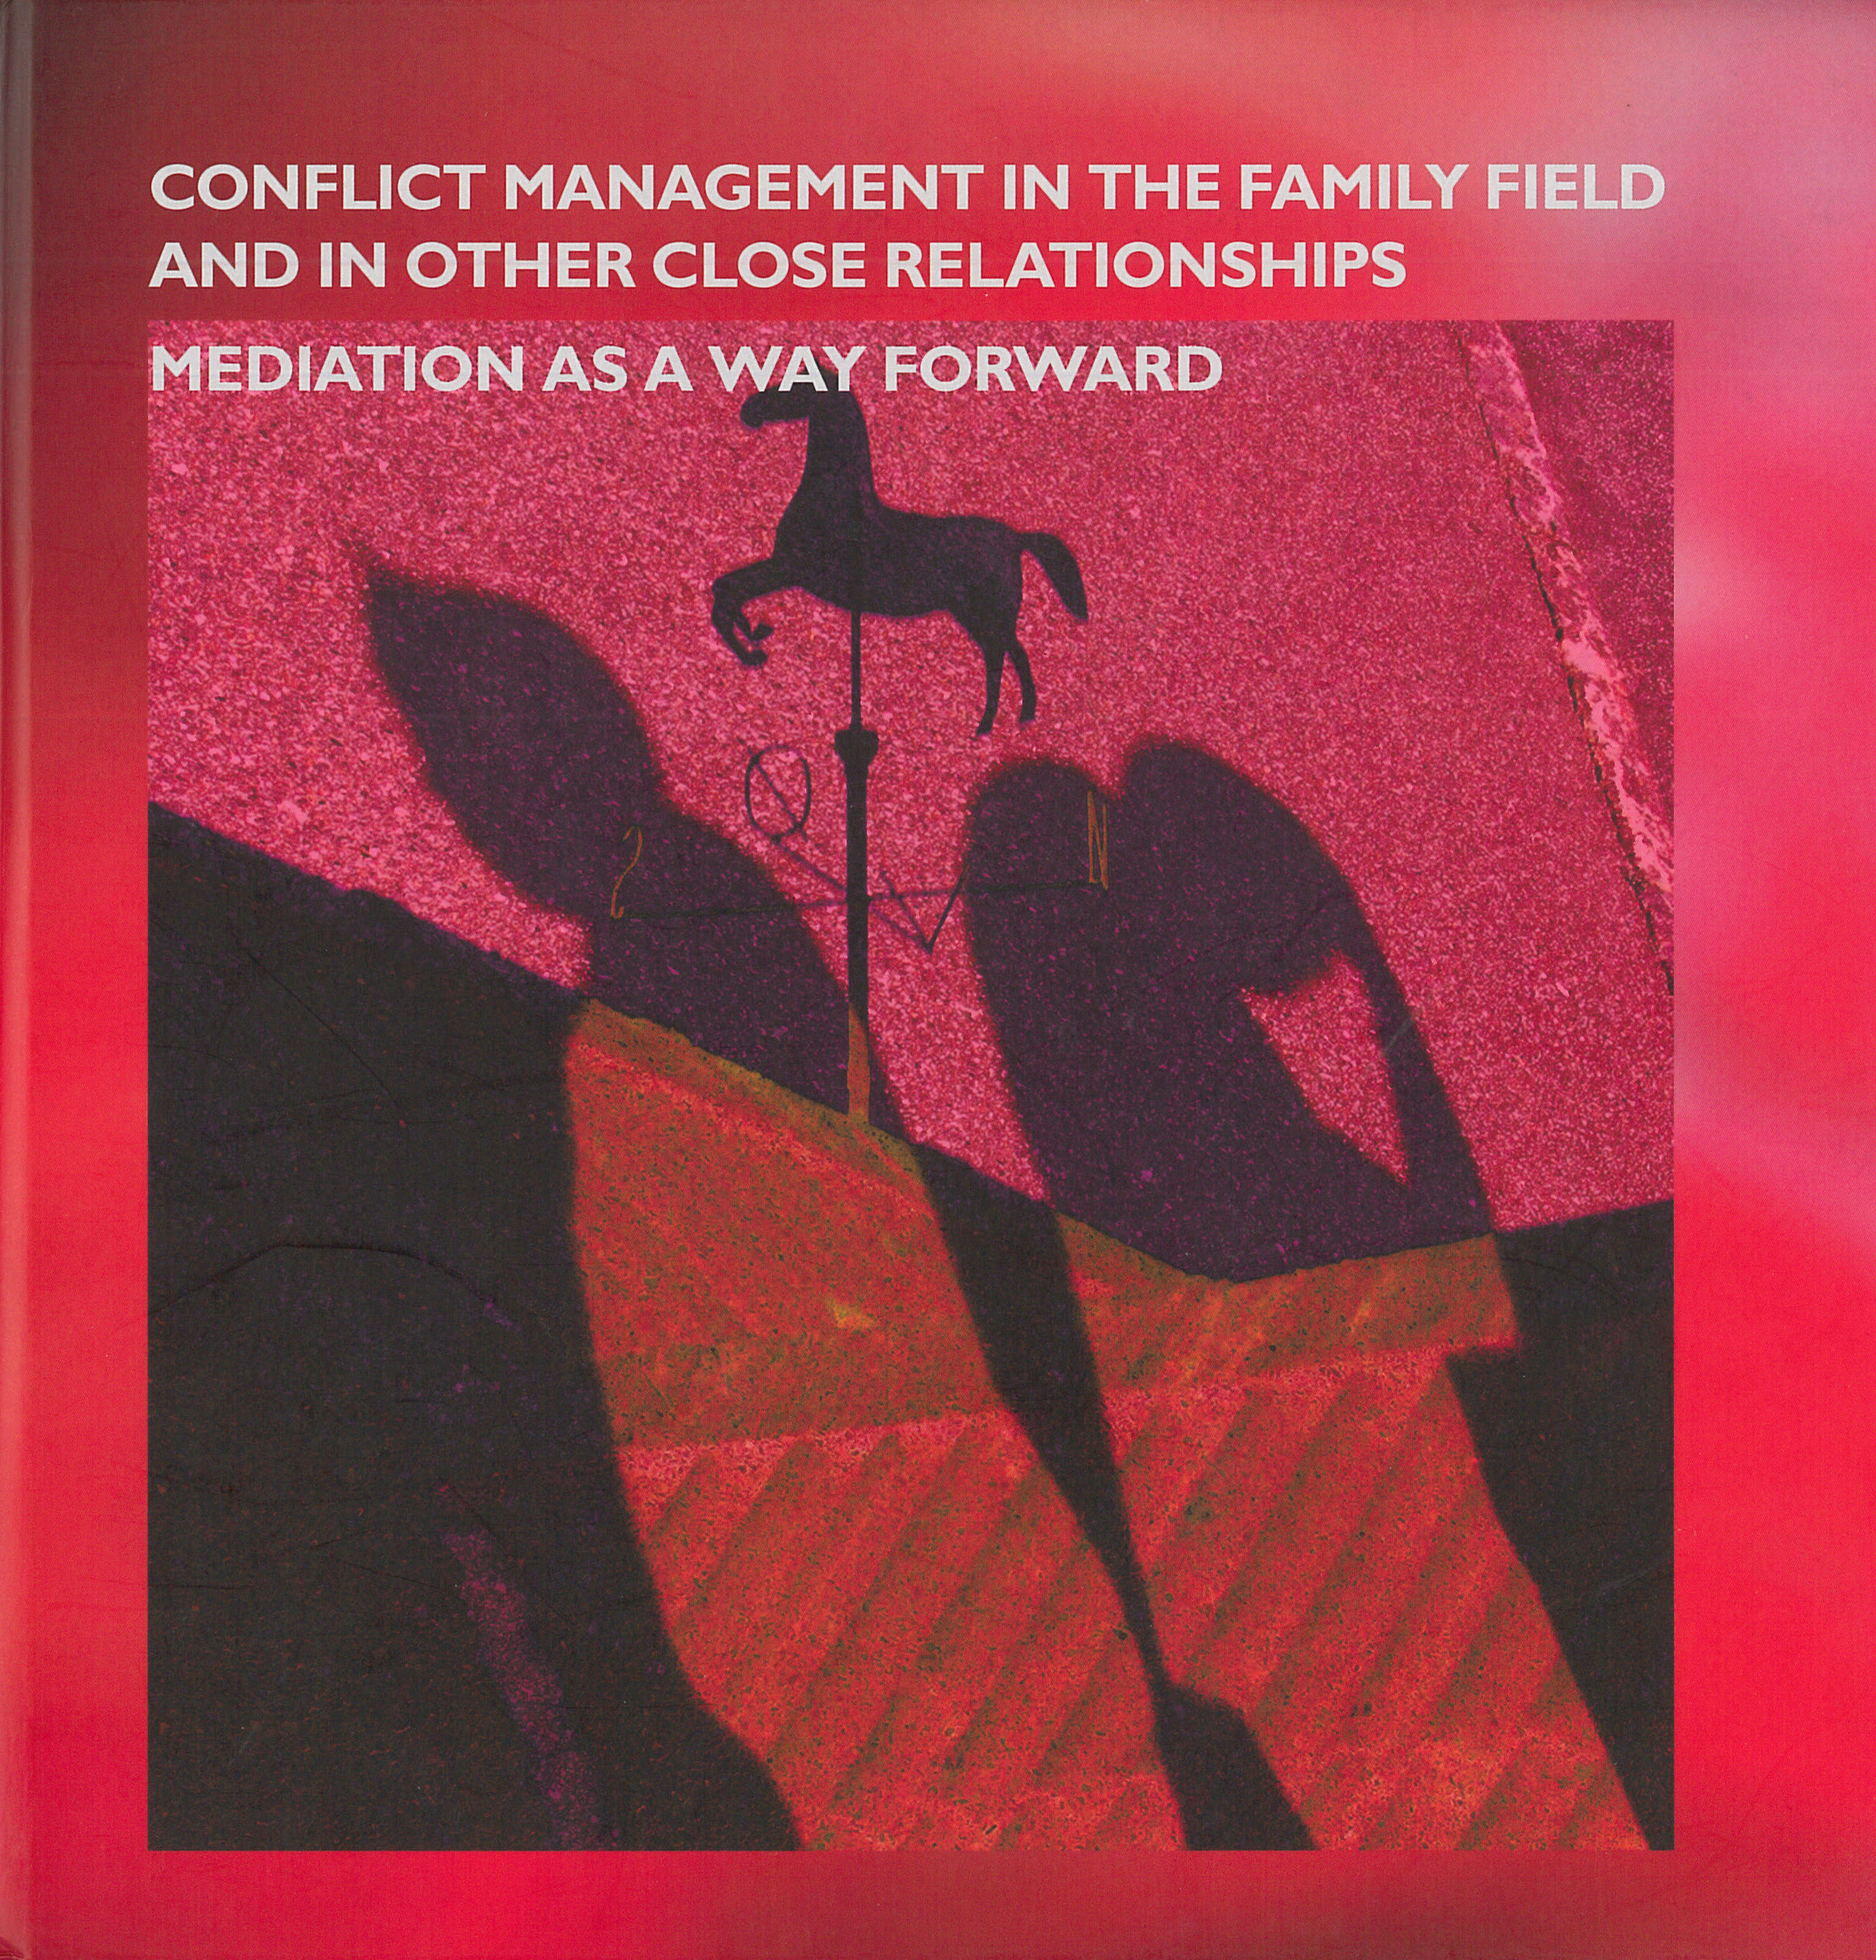 Mediation as a Way Forward. Conflict Management in The Family Field and Other Close Relationships